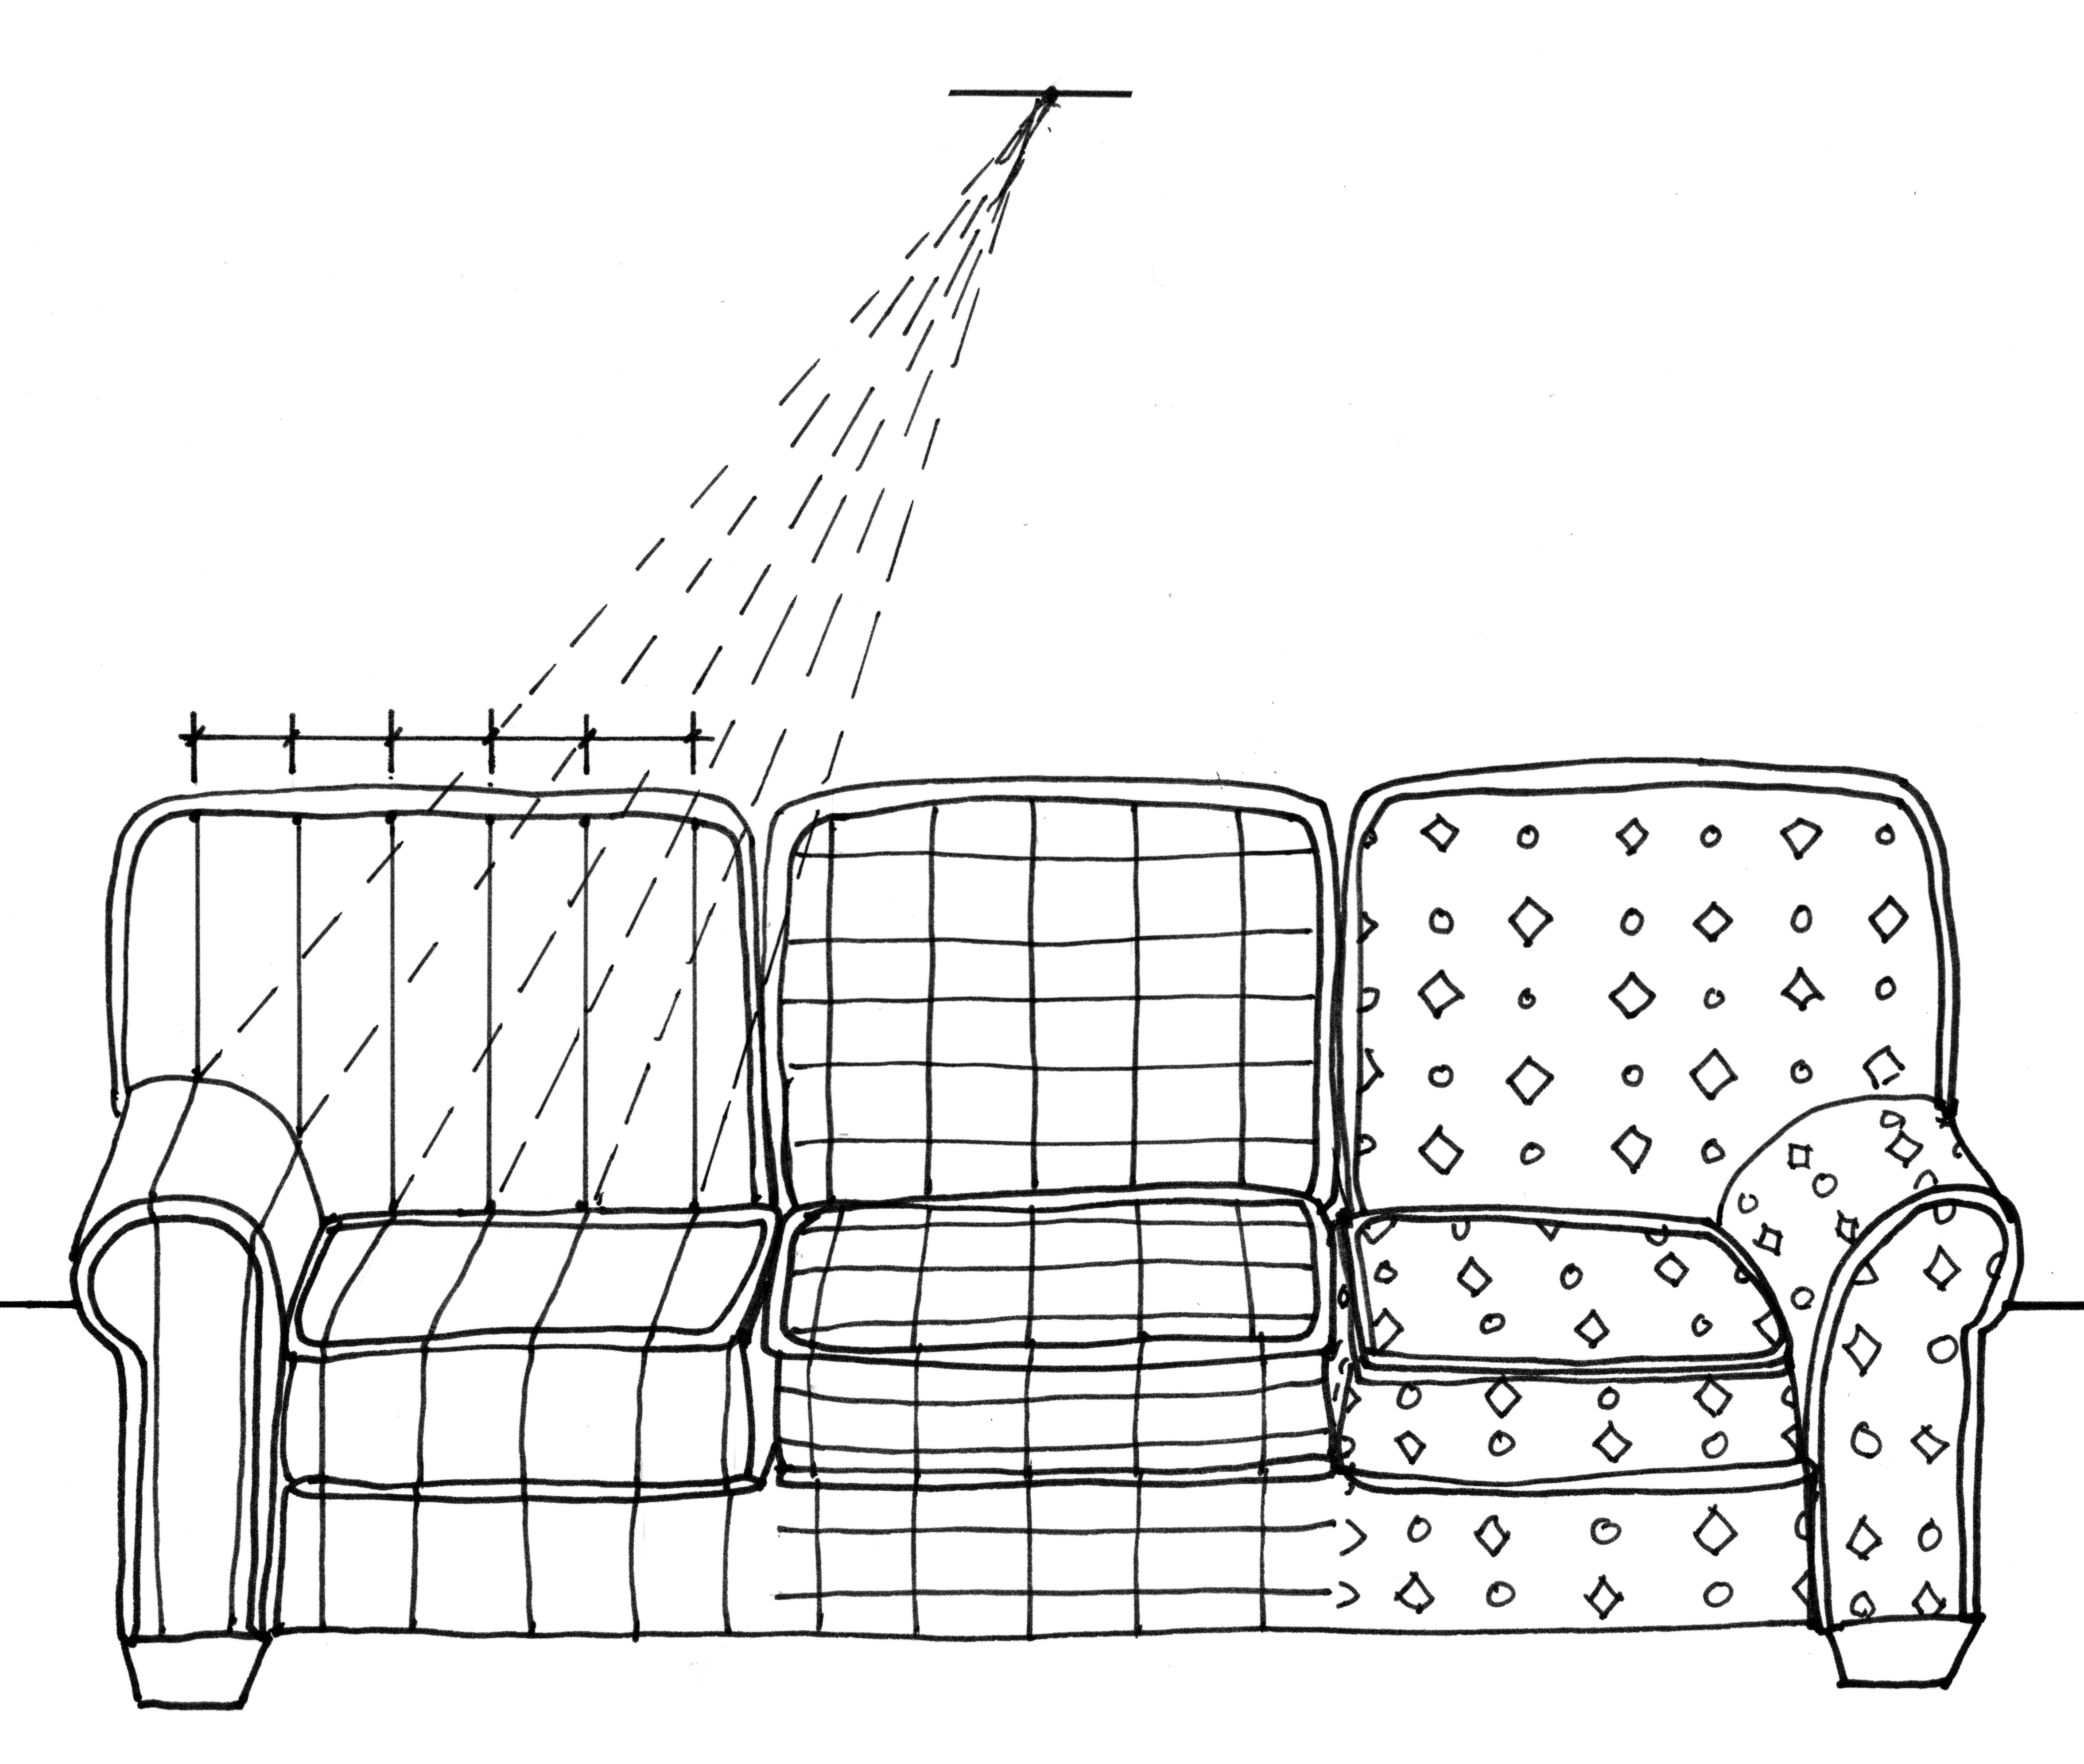 Drawn office one point perspective Sofa demonstrating a has Here